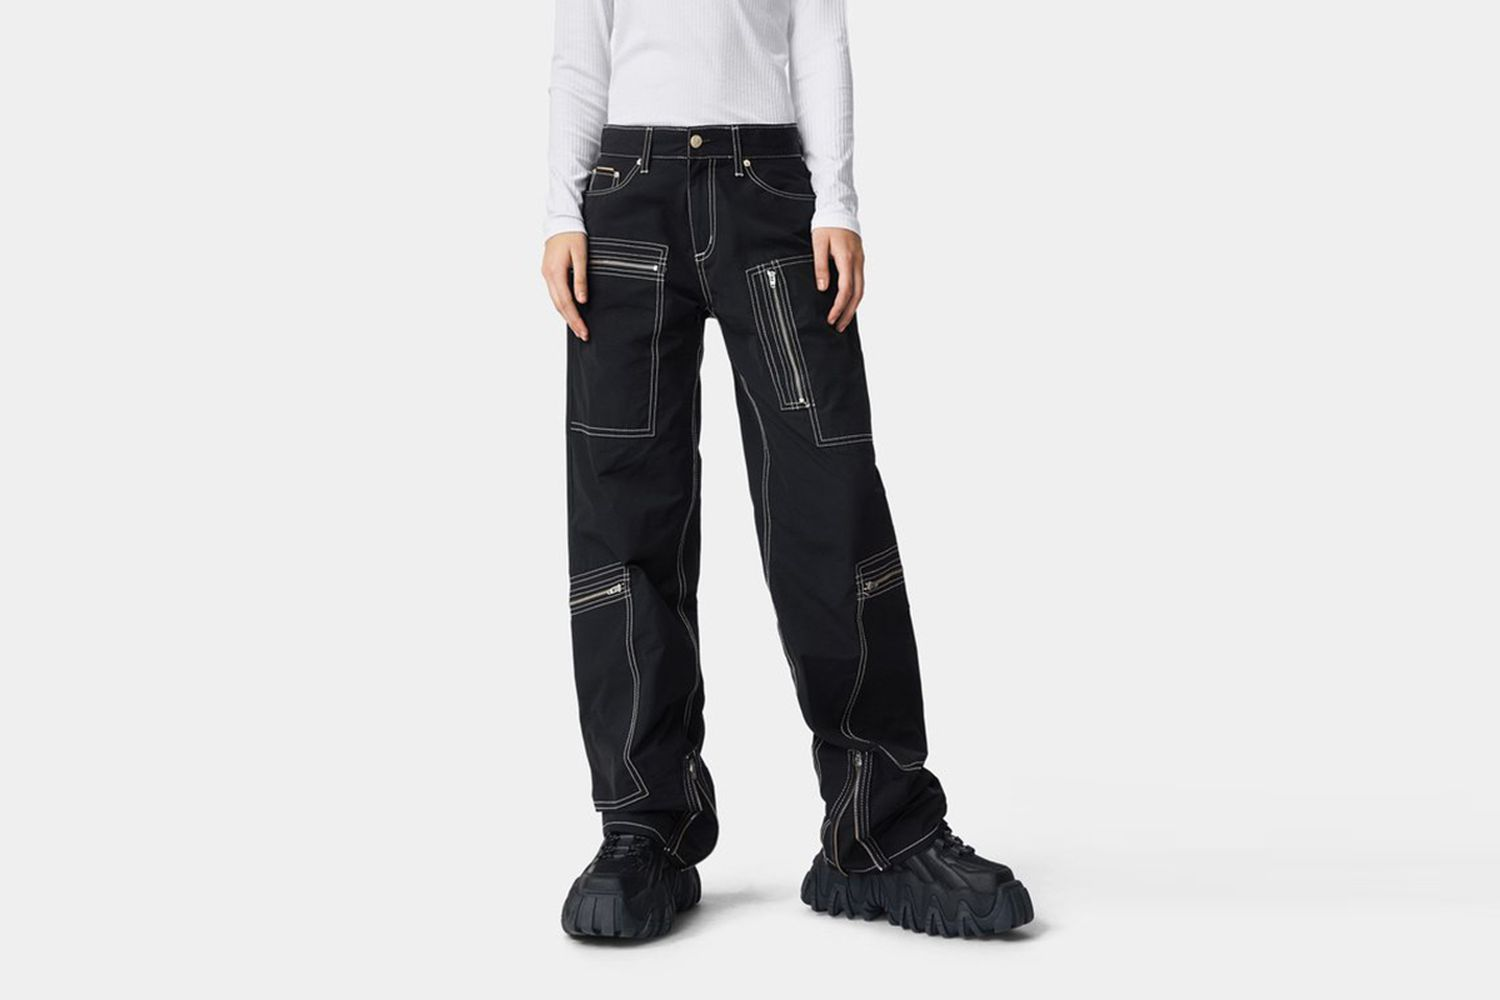 Benz MK Tech Pants